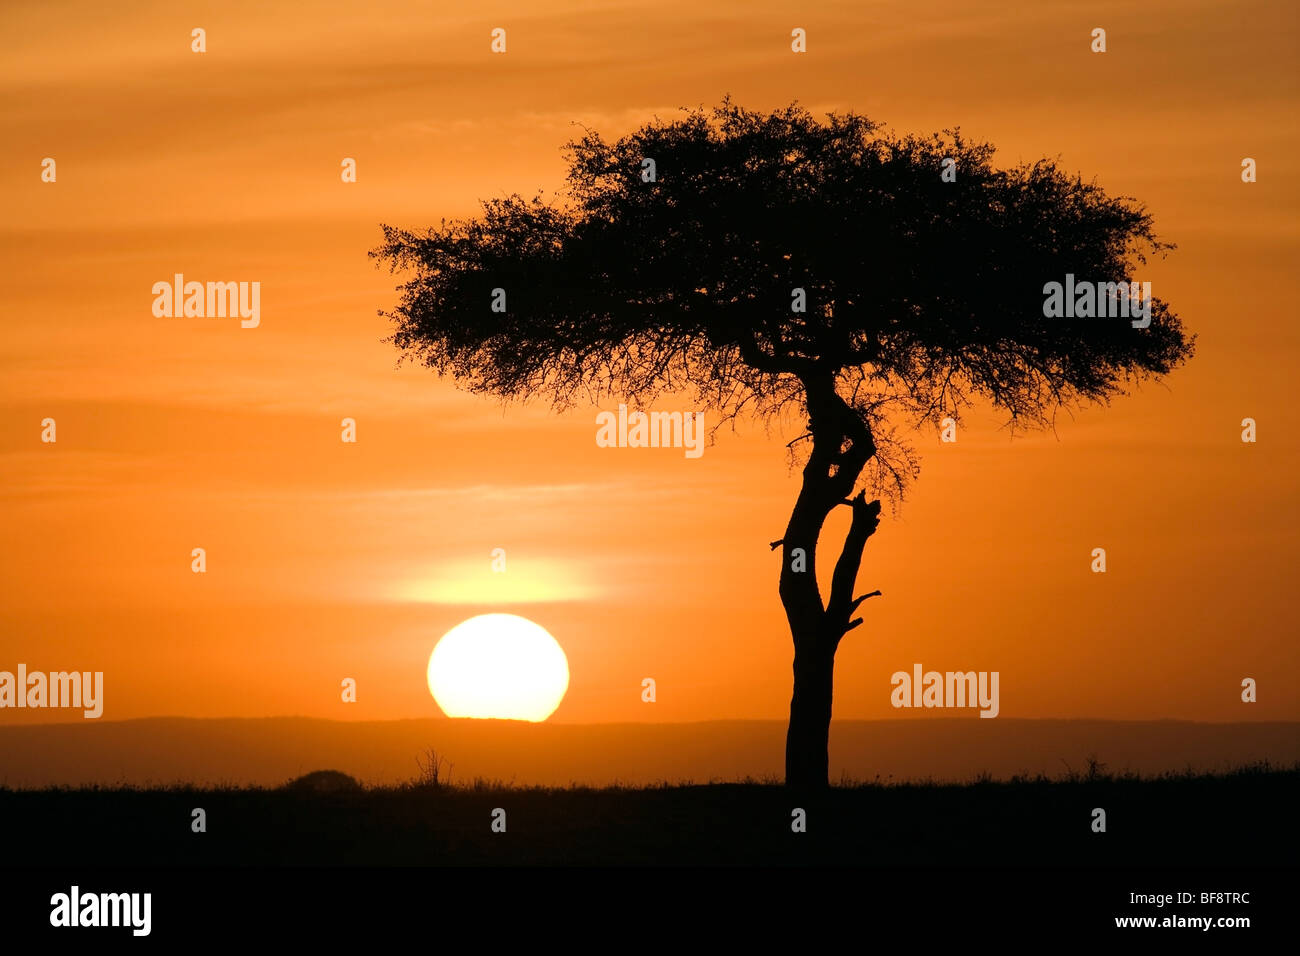 Sunset in the Mara - Masai Mara National Reserve, Kenya - Stock Image